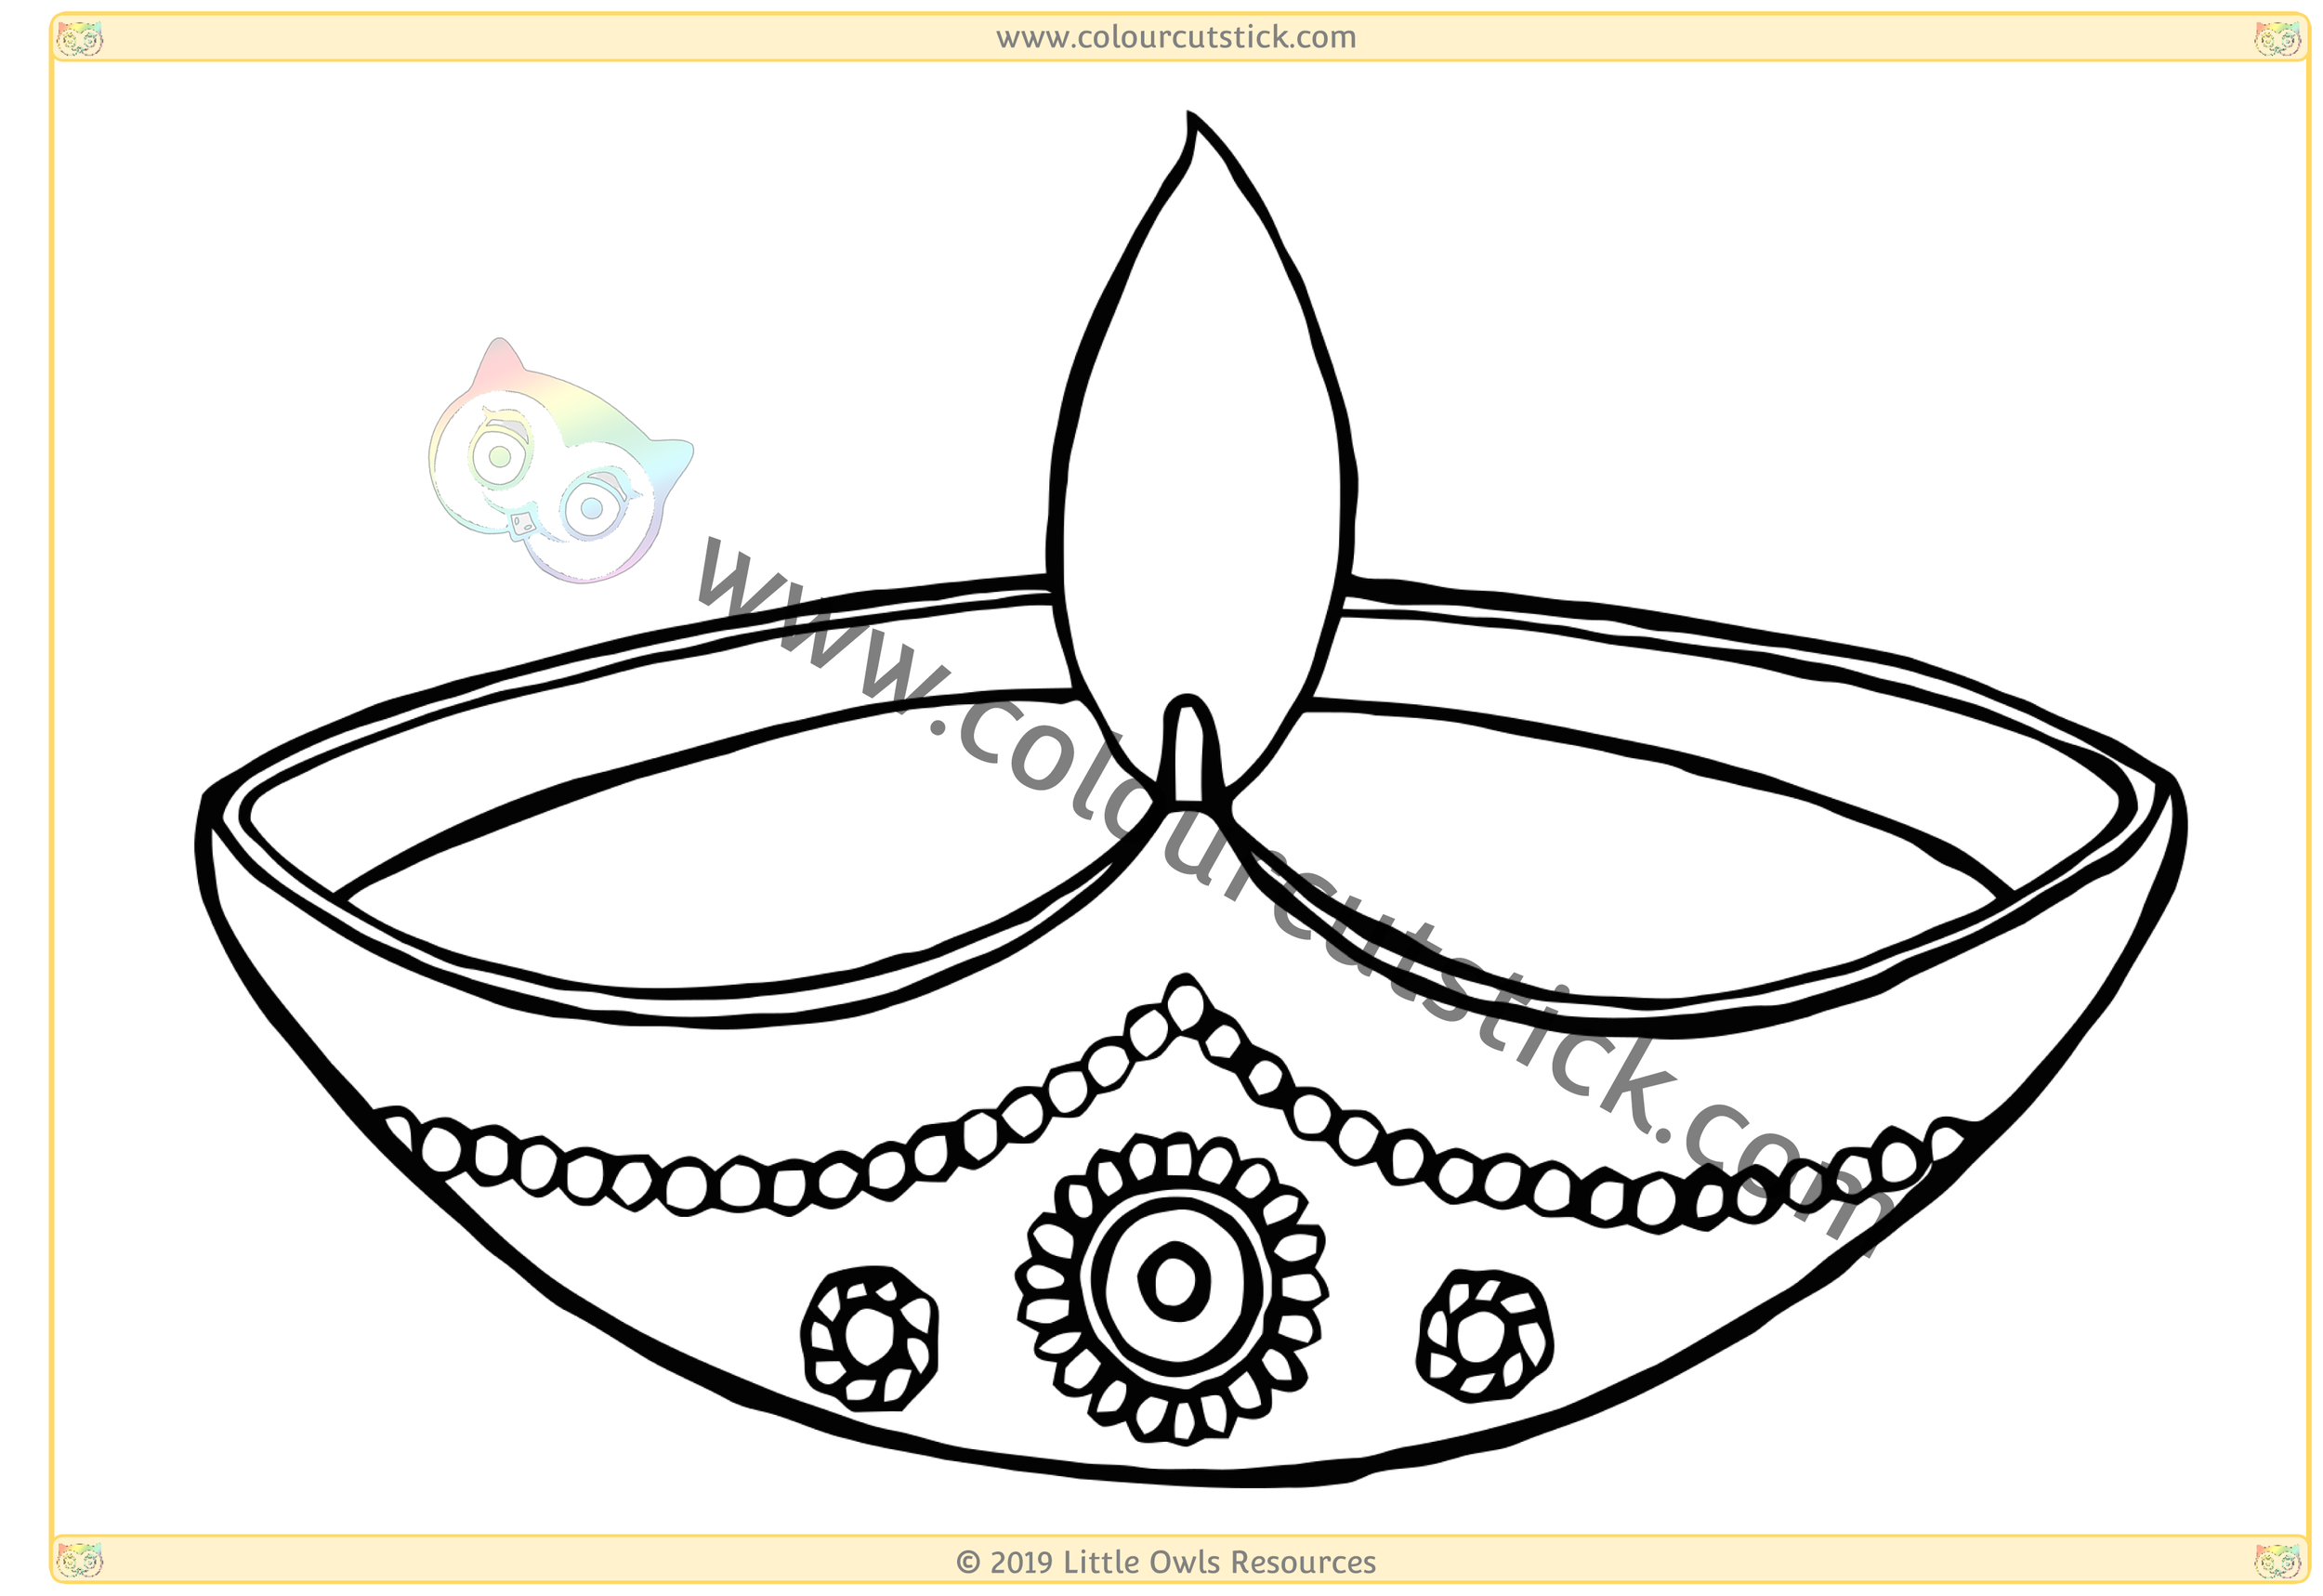 Diwali Colouring CSS-1.png